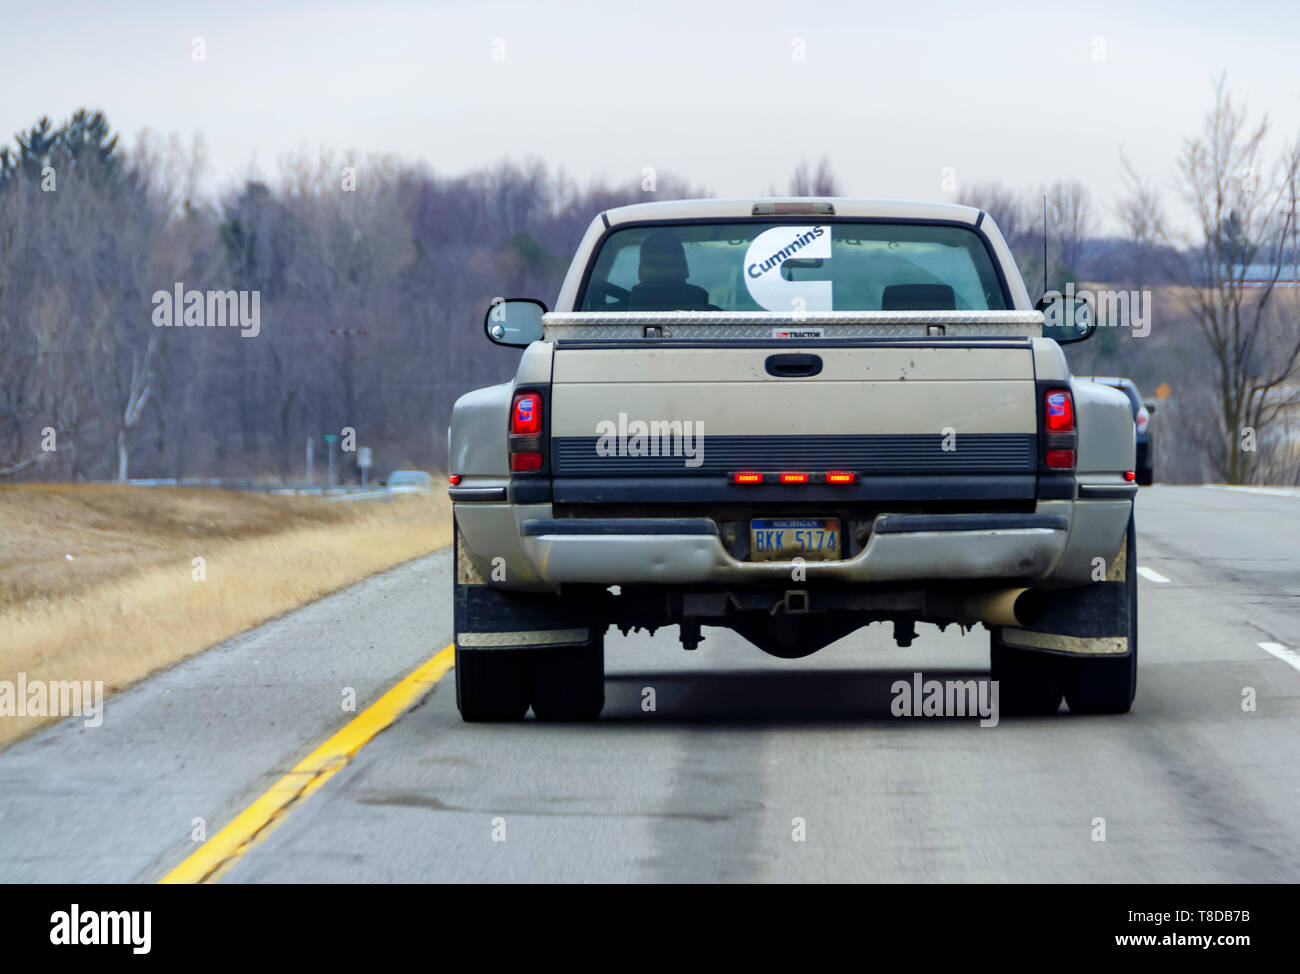 A GMC pickup truck, a gas guzzler, on a highway. - Stock Image